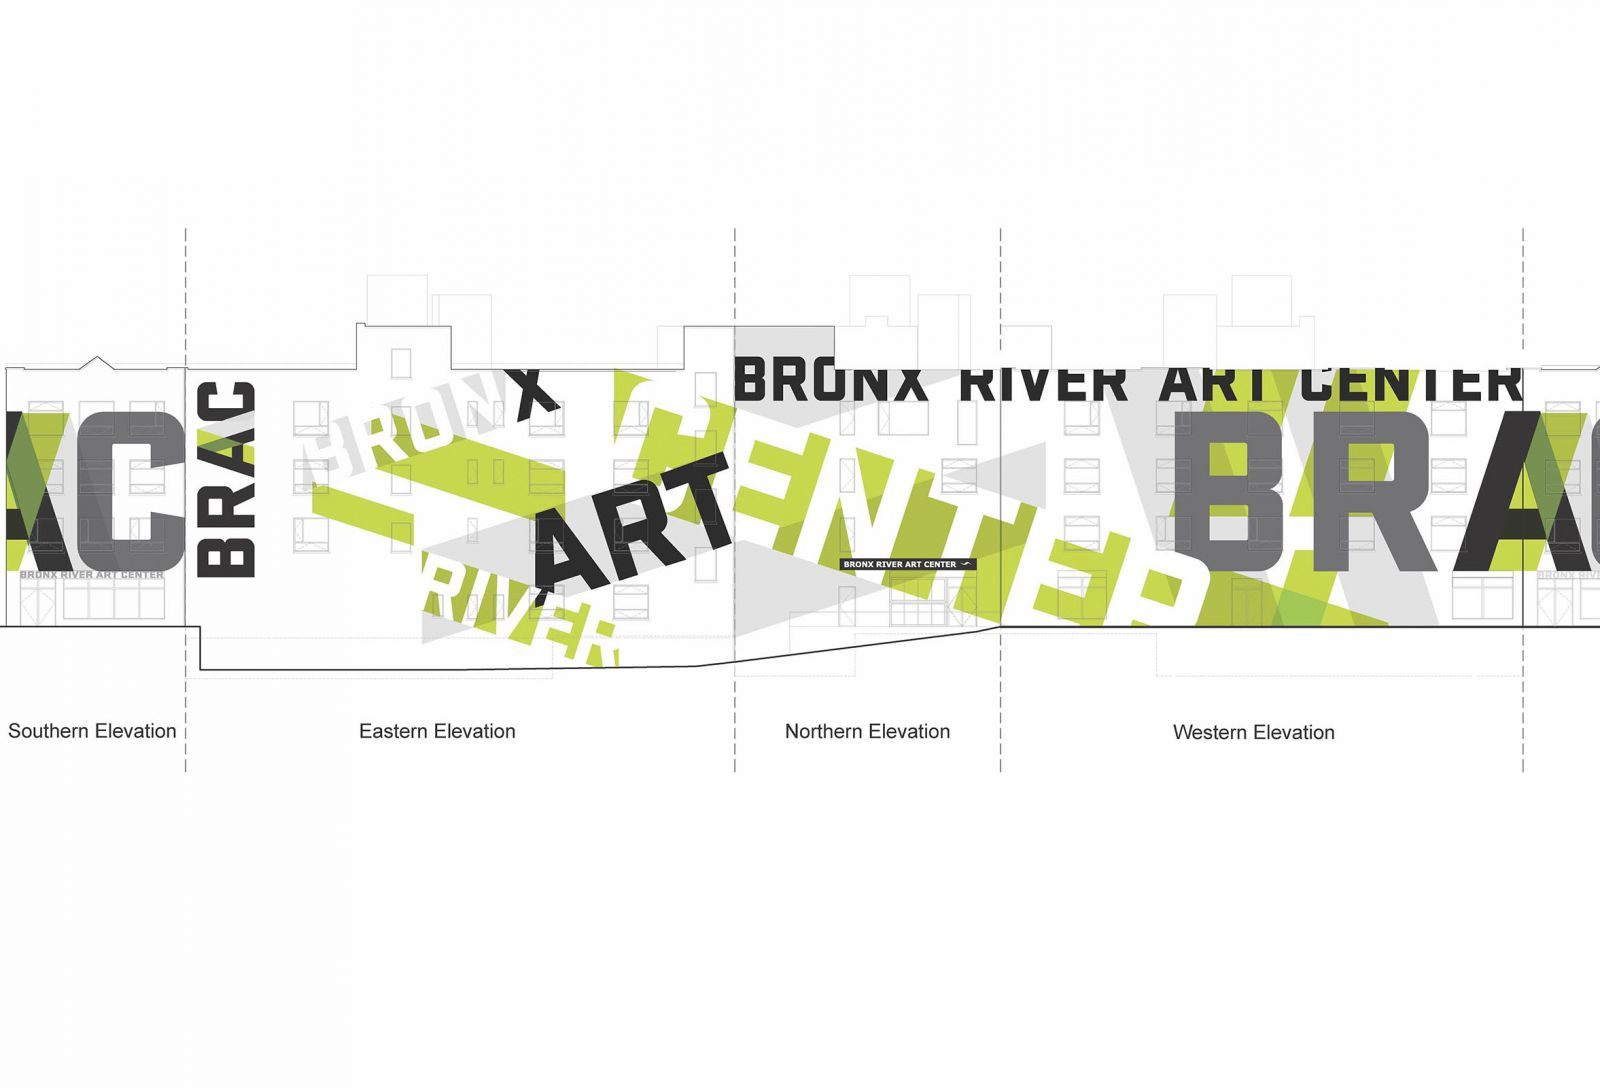 images?q=tbn:ANd9GcQh_l3eQ5xwiPy07kGEXjmjgmBKBRB7H2mRxCGhv1tFWg5c_mWT Ideas For Bronx High School For The Visual Arts Bronx Ny @koolgadgetz.com.info